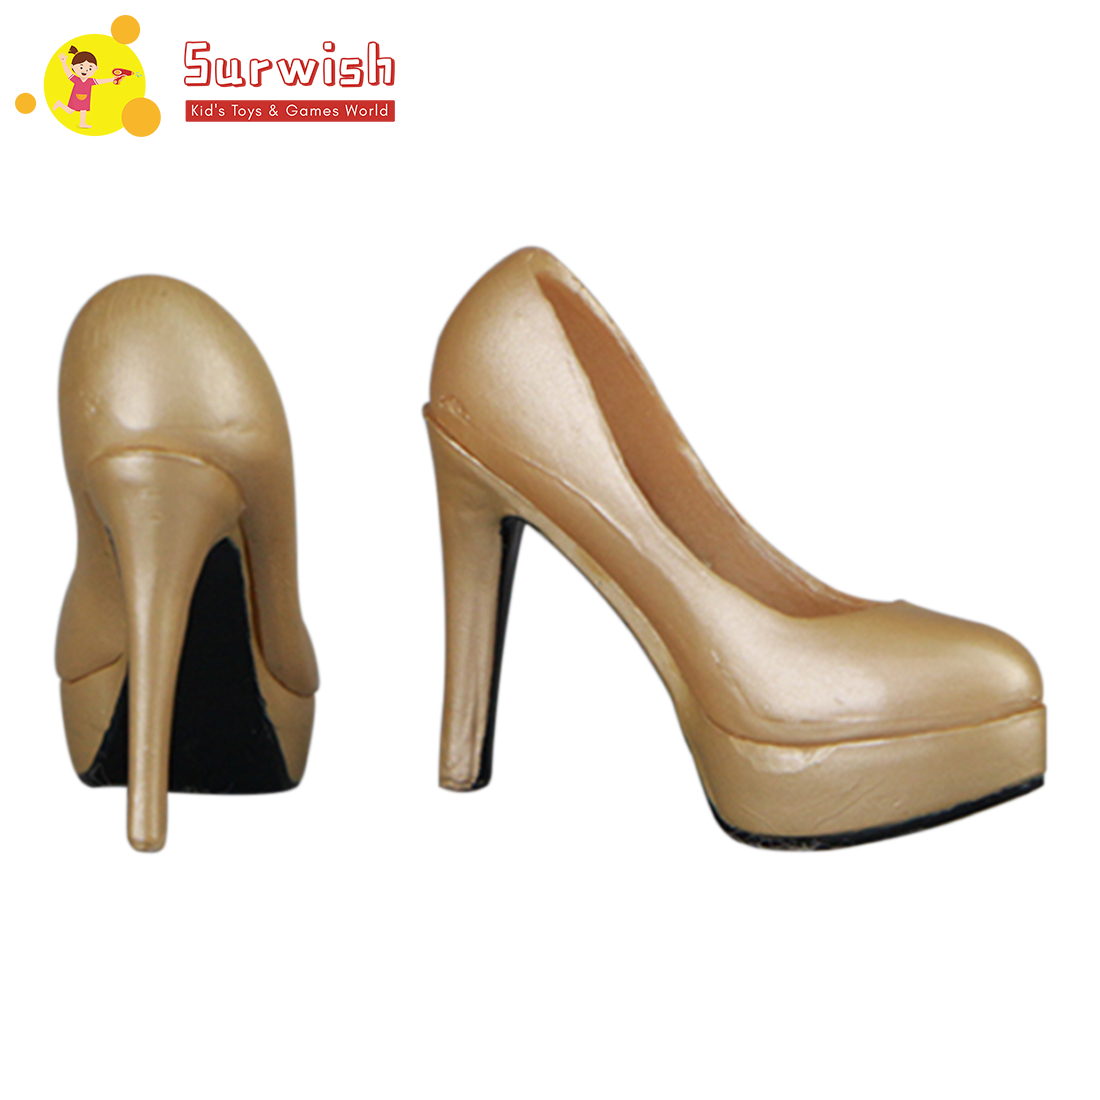 High Heels Shoes For 1/6 Scale Action Female Figure - Golden